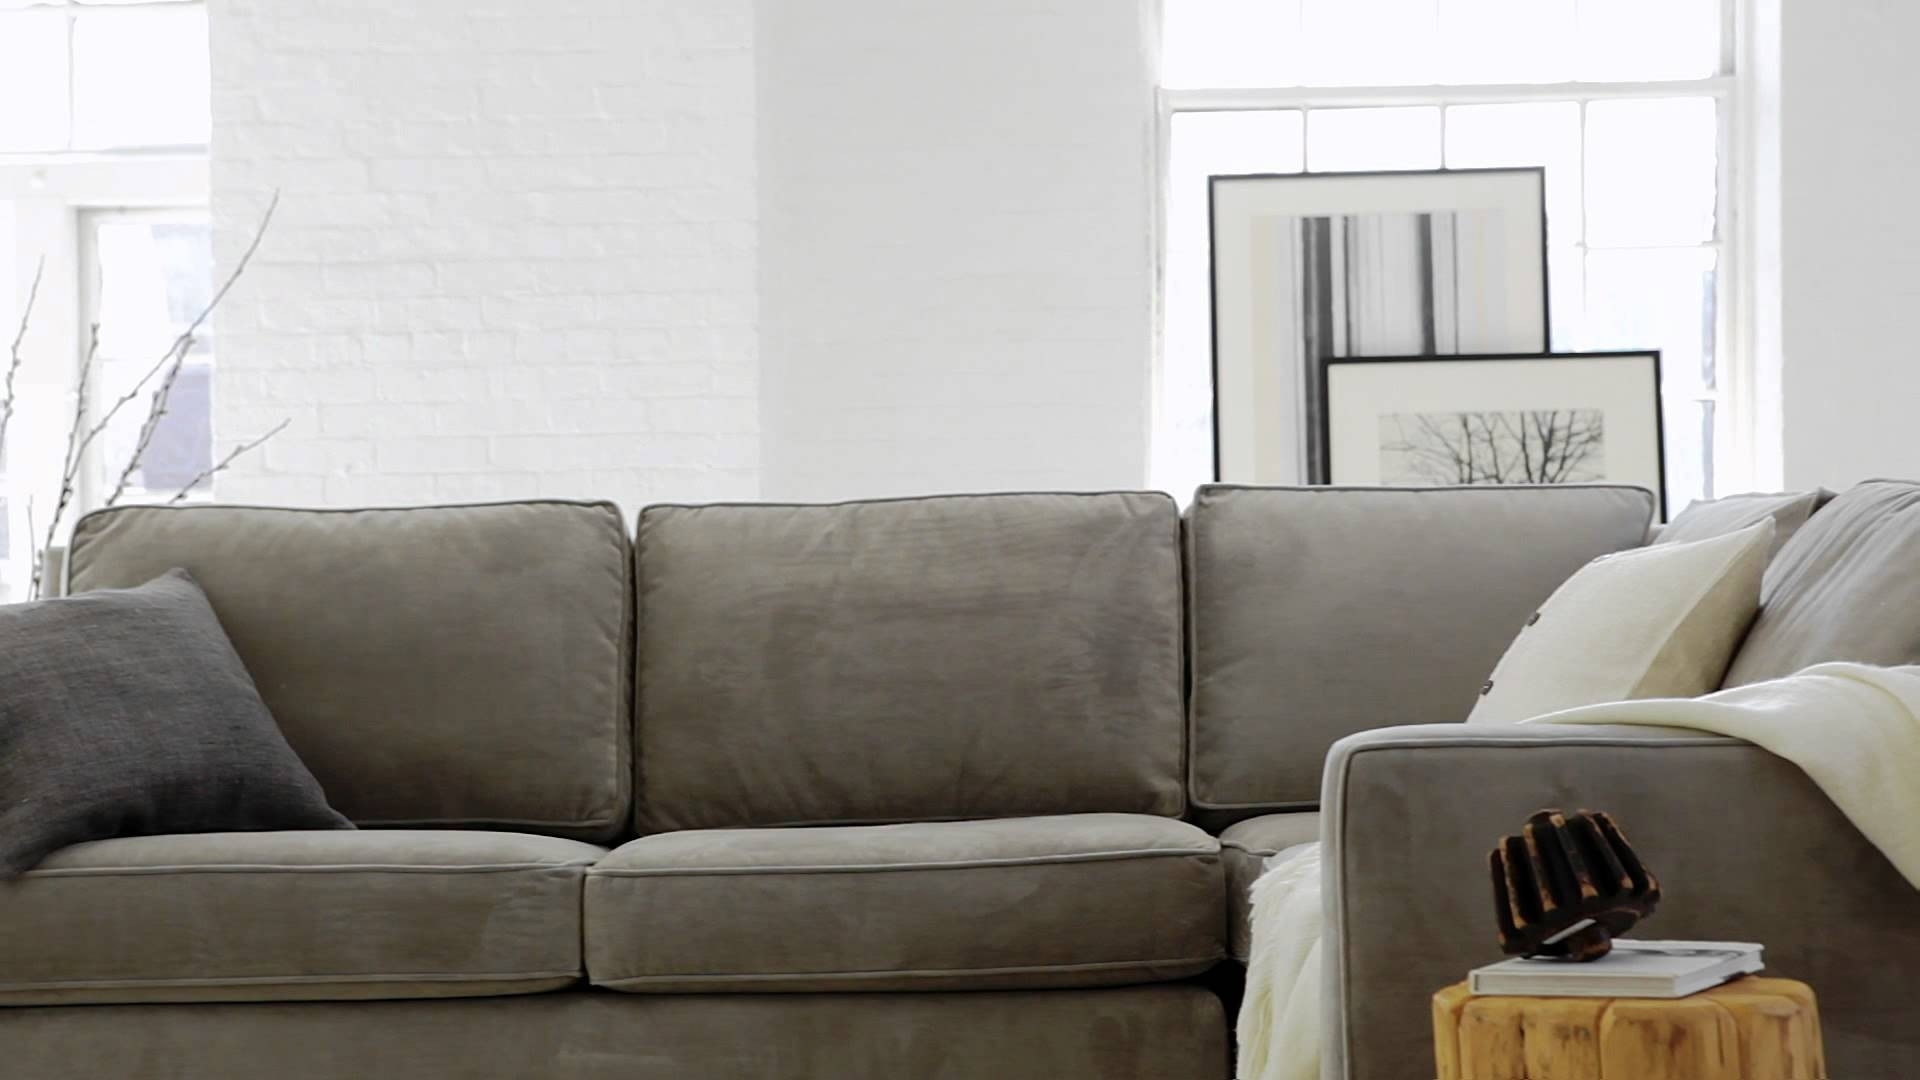 Fresh 3 Seat Sectional Sofa West Elm – Mediasupload Intended For West Elm Sectional Sofas (View 3 of 10)